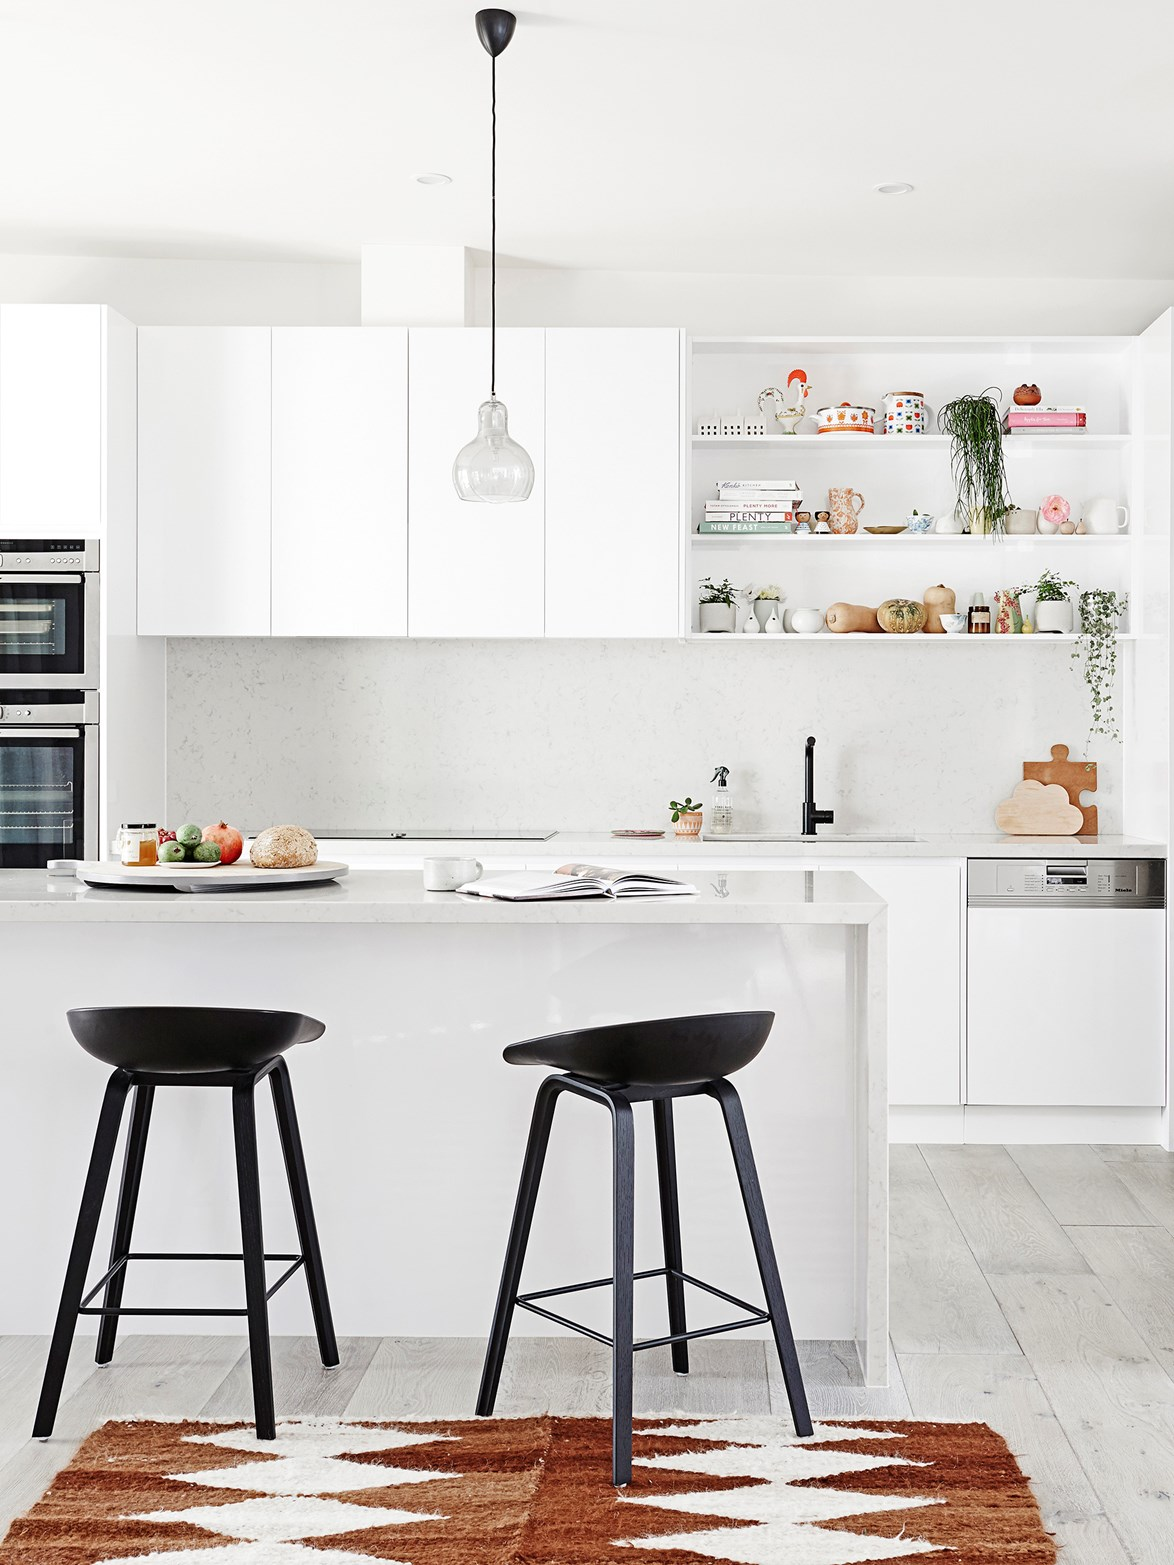 The seamless cabinetry and open shelving in this all-white kitchen allows the owner to stow some pieces away and display others front and centre to inject personality.